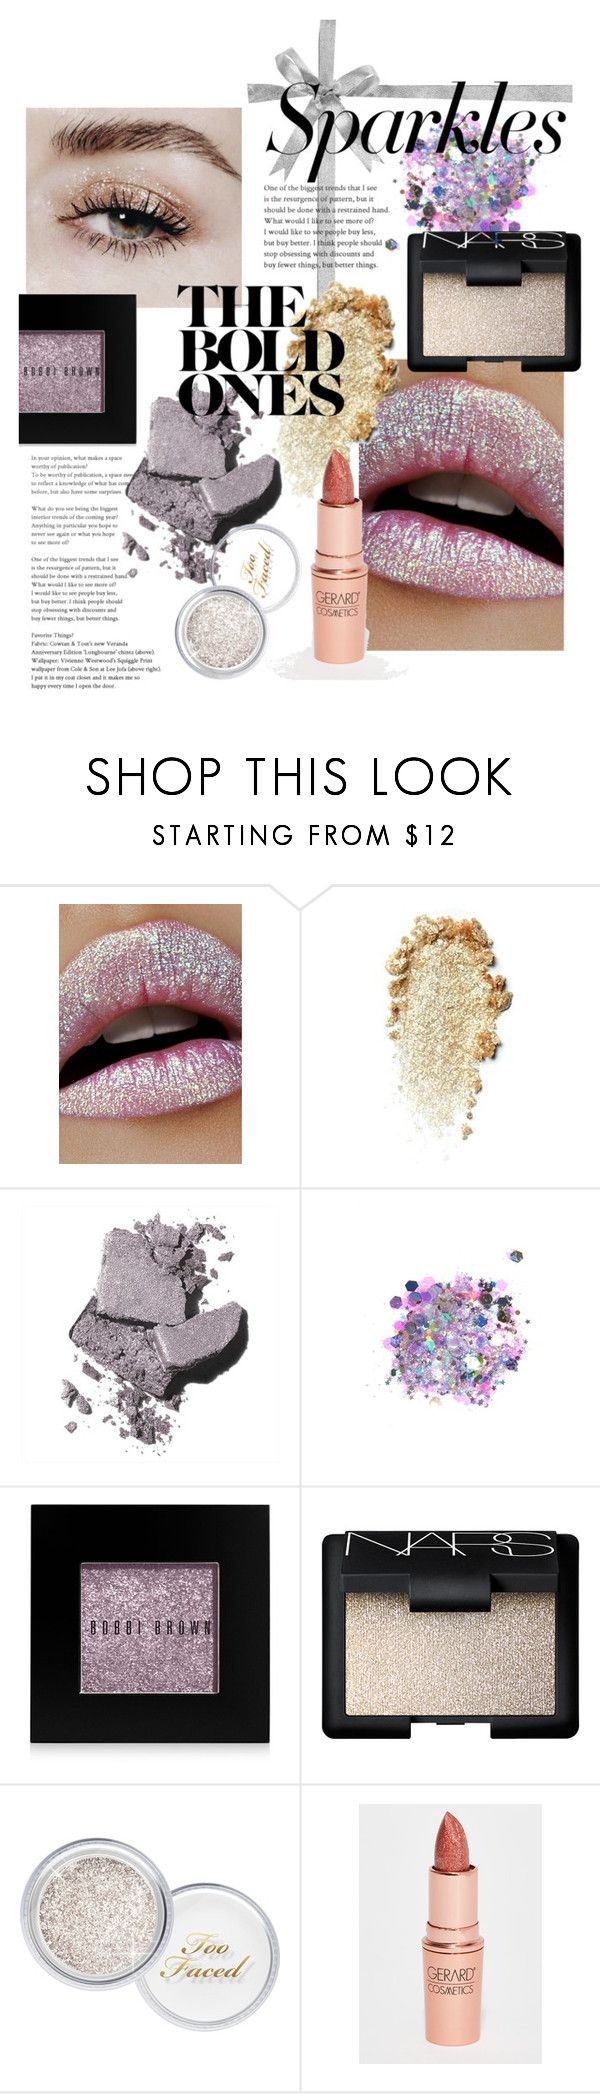 """""""#PolyPresents: Sparkly Beauty"""" by fabulusvogue ❤ liked on Polyvore featuring beauty, Lime Crime, Bobbi Brown Cosmetics, The Gypsy Shrine, NARS Cosmetics, Too Faced Cosmetics, Gerard Cosmetics, contestentry and polyPresents"""